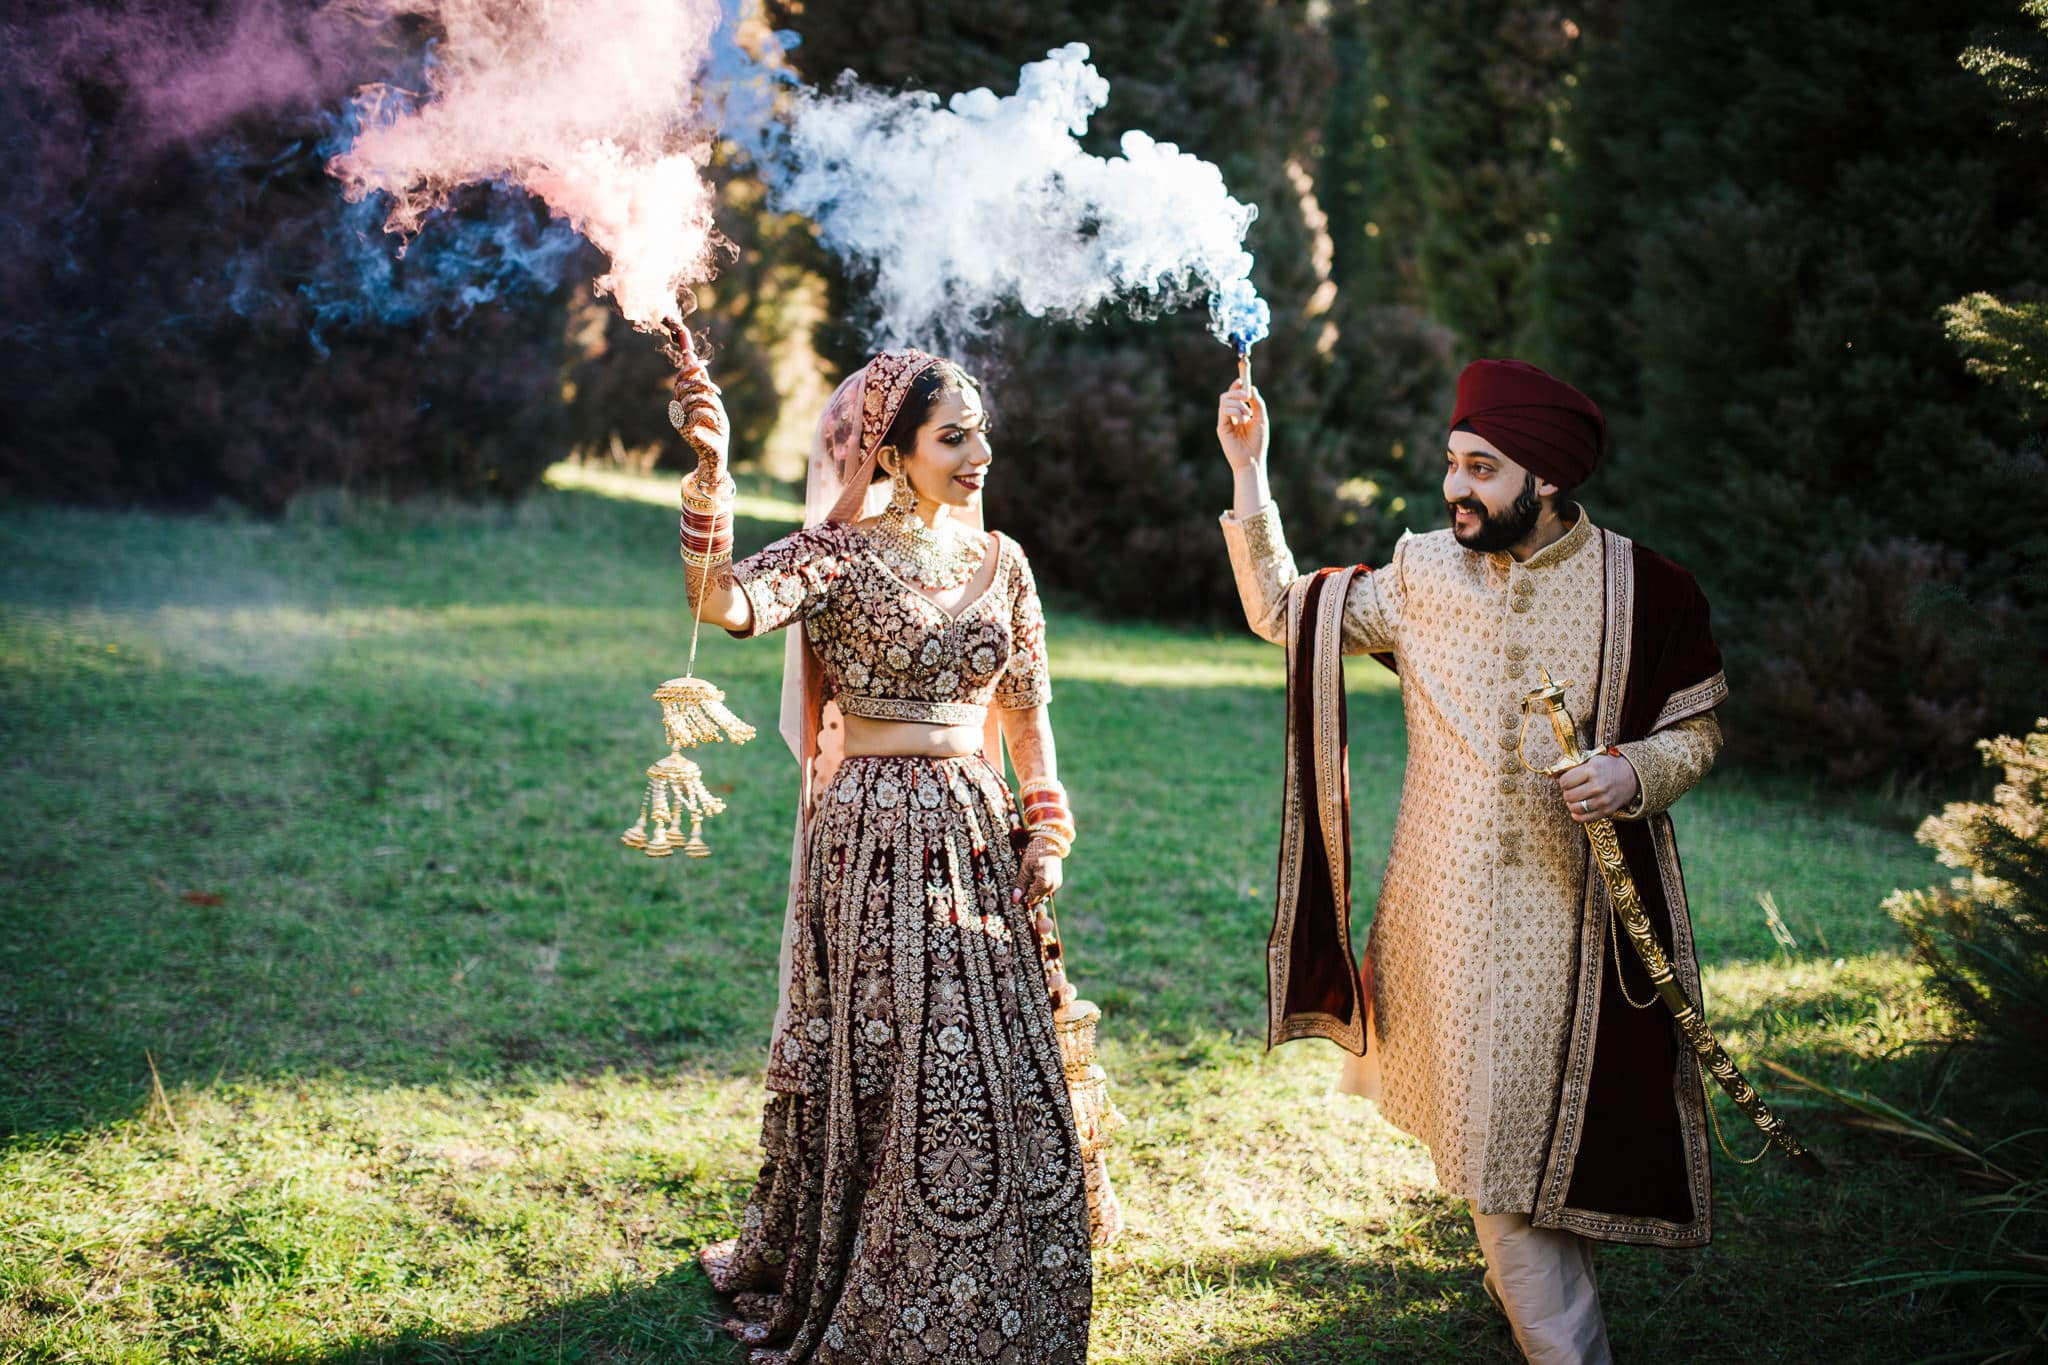 Simran and Anmol's vibrant and modern Sikh wedding celebration in Melbourne. Wedding photography was captured by Indian wedding photographer, Bhargav Boppa. The couple were colour coordinated for every function. We loved Simran's royal and elegant bridal lehenga for her wedding day especially. Go behind the scenes of their wedding celebration on The Maharani Diaries now.